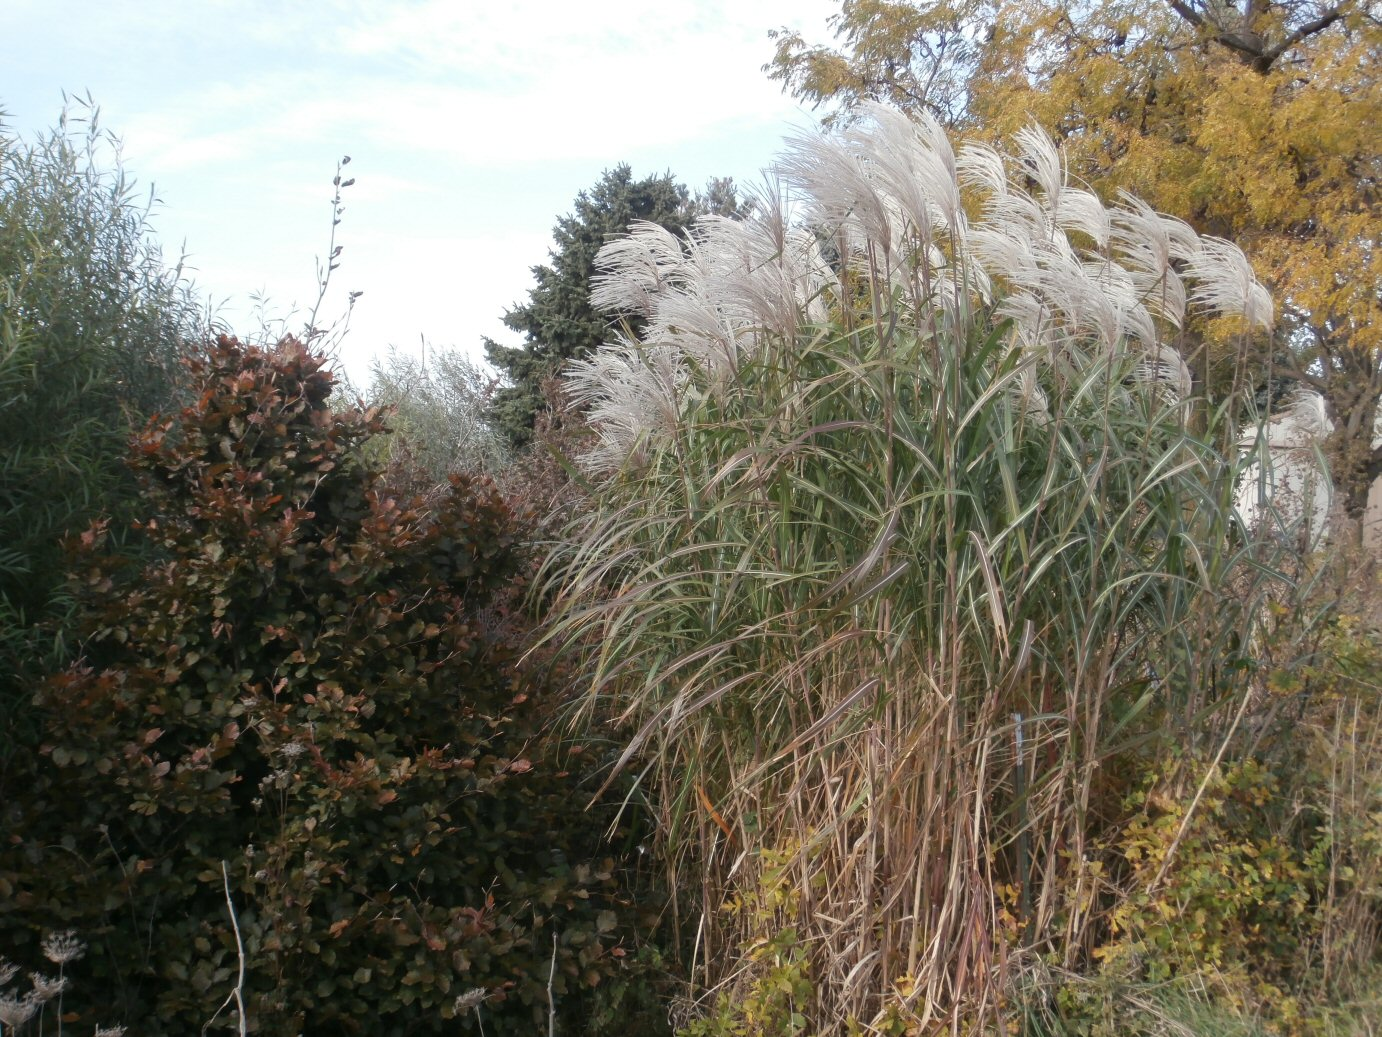 Kleckner oasis iowa miscanthus for Tall grass with plumes